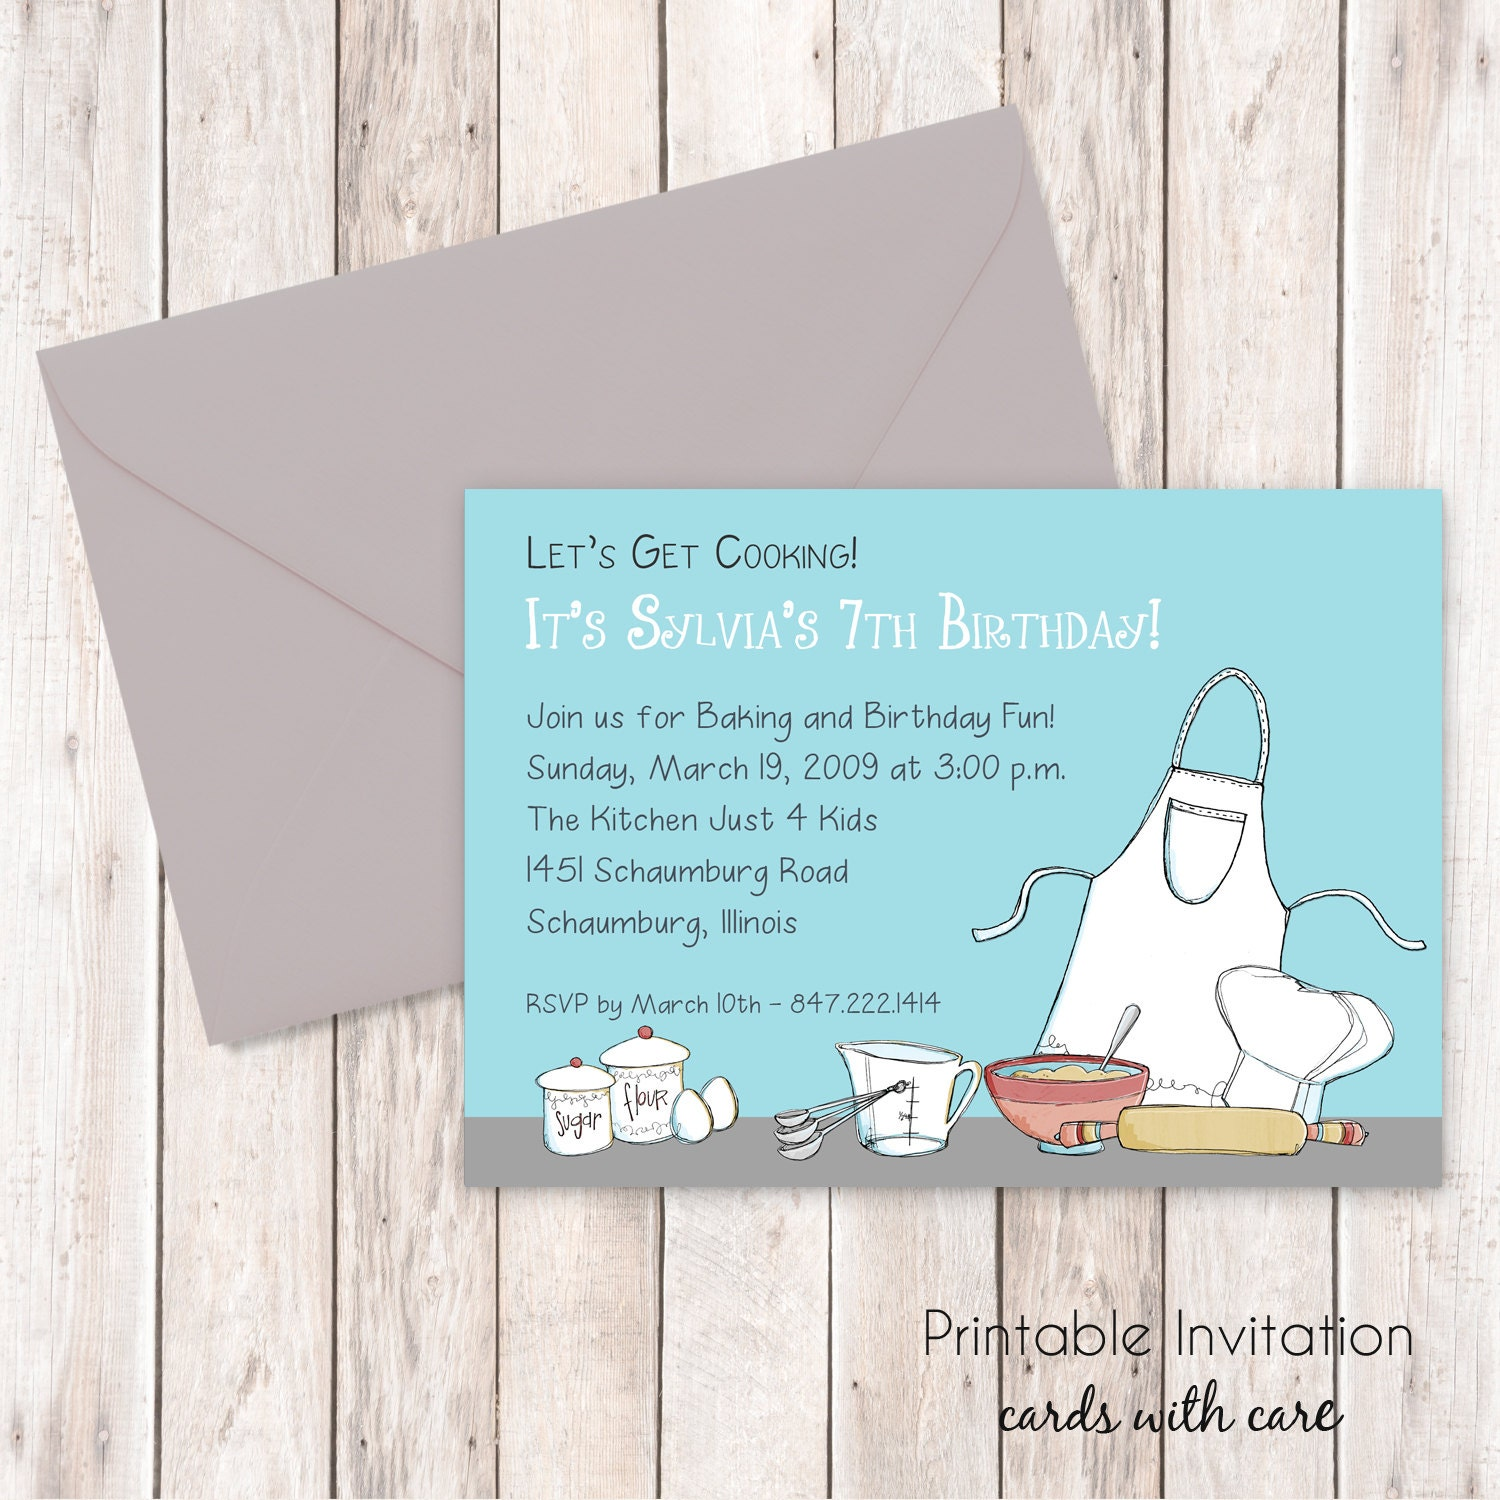 Delighted Kids Cooking Party Invitations Images - Invitation Card ...